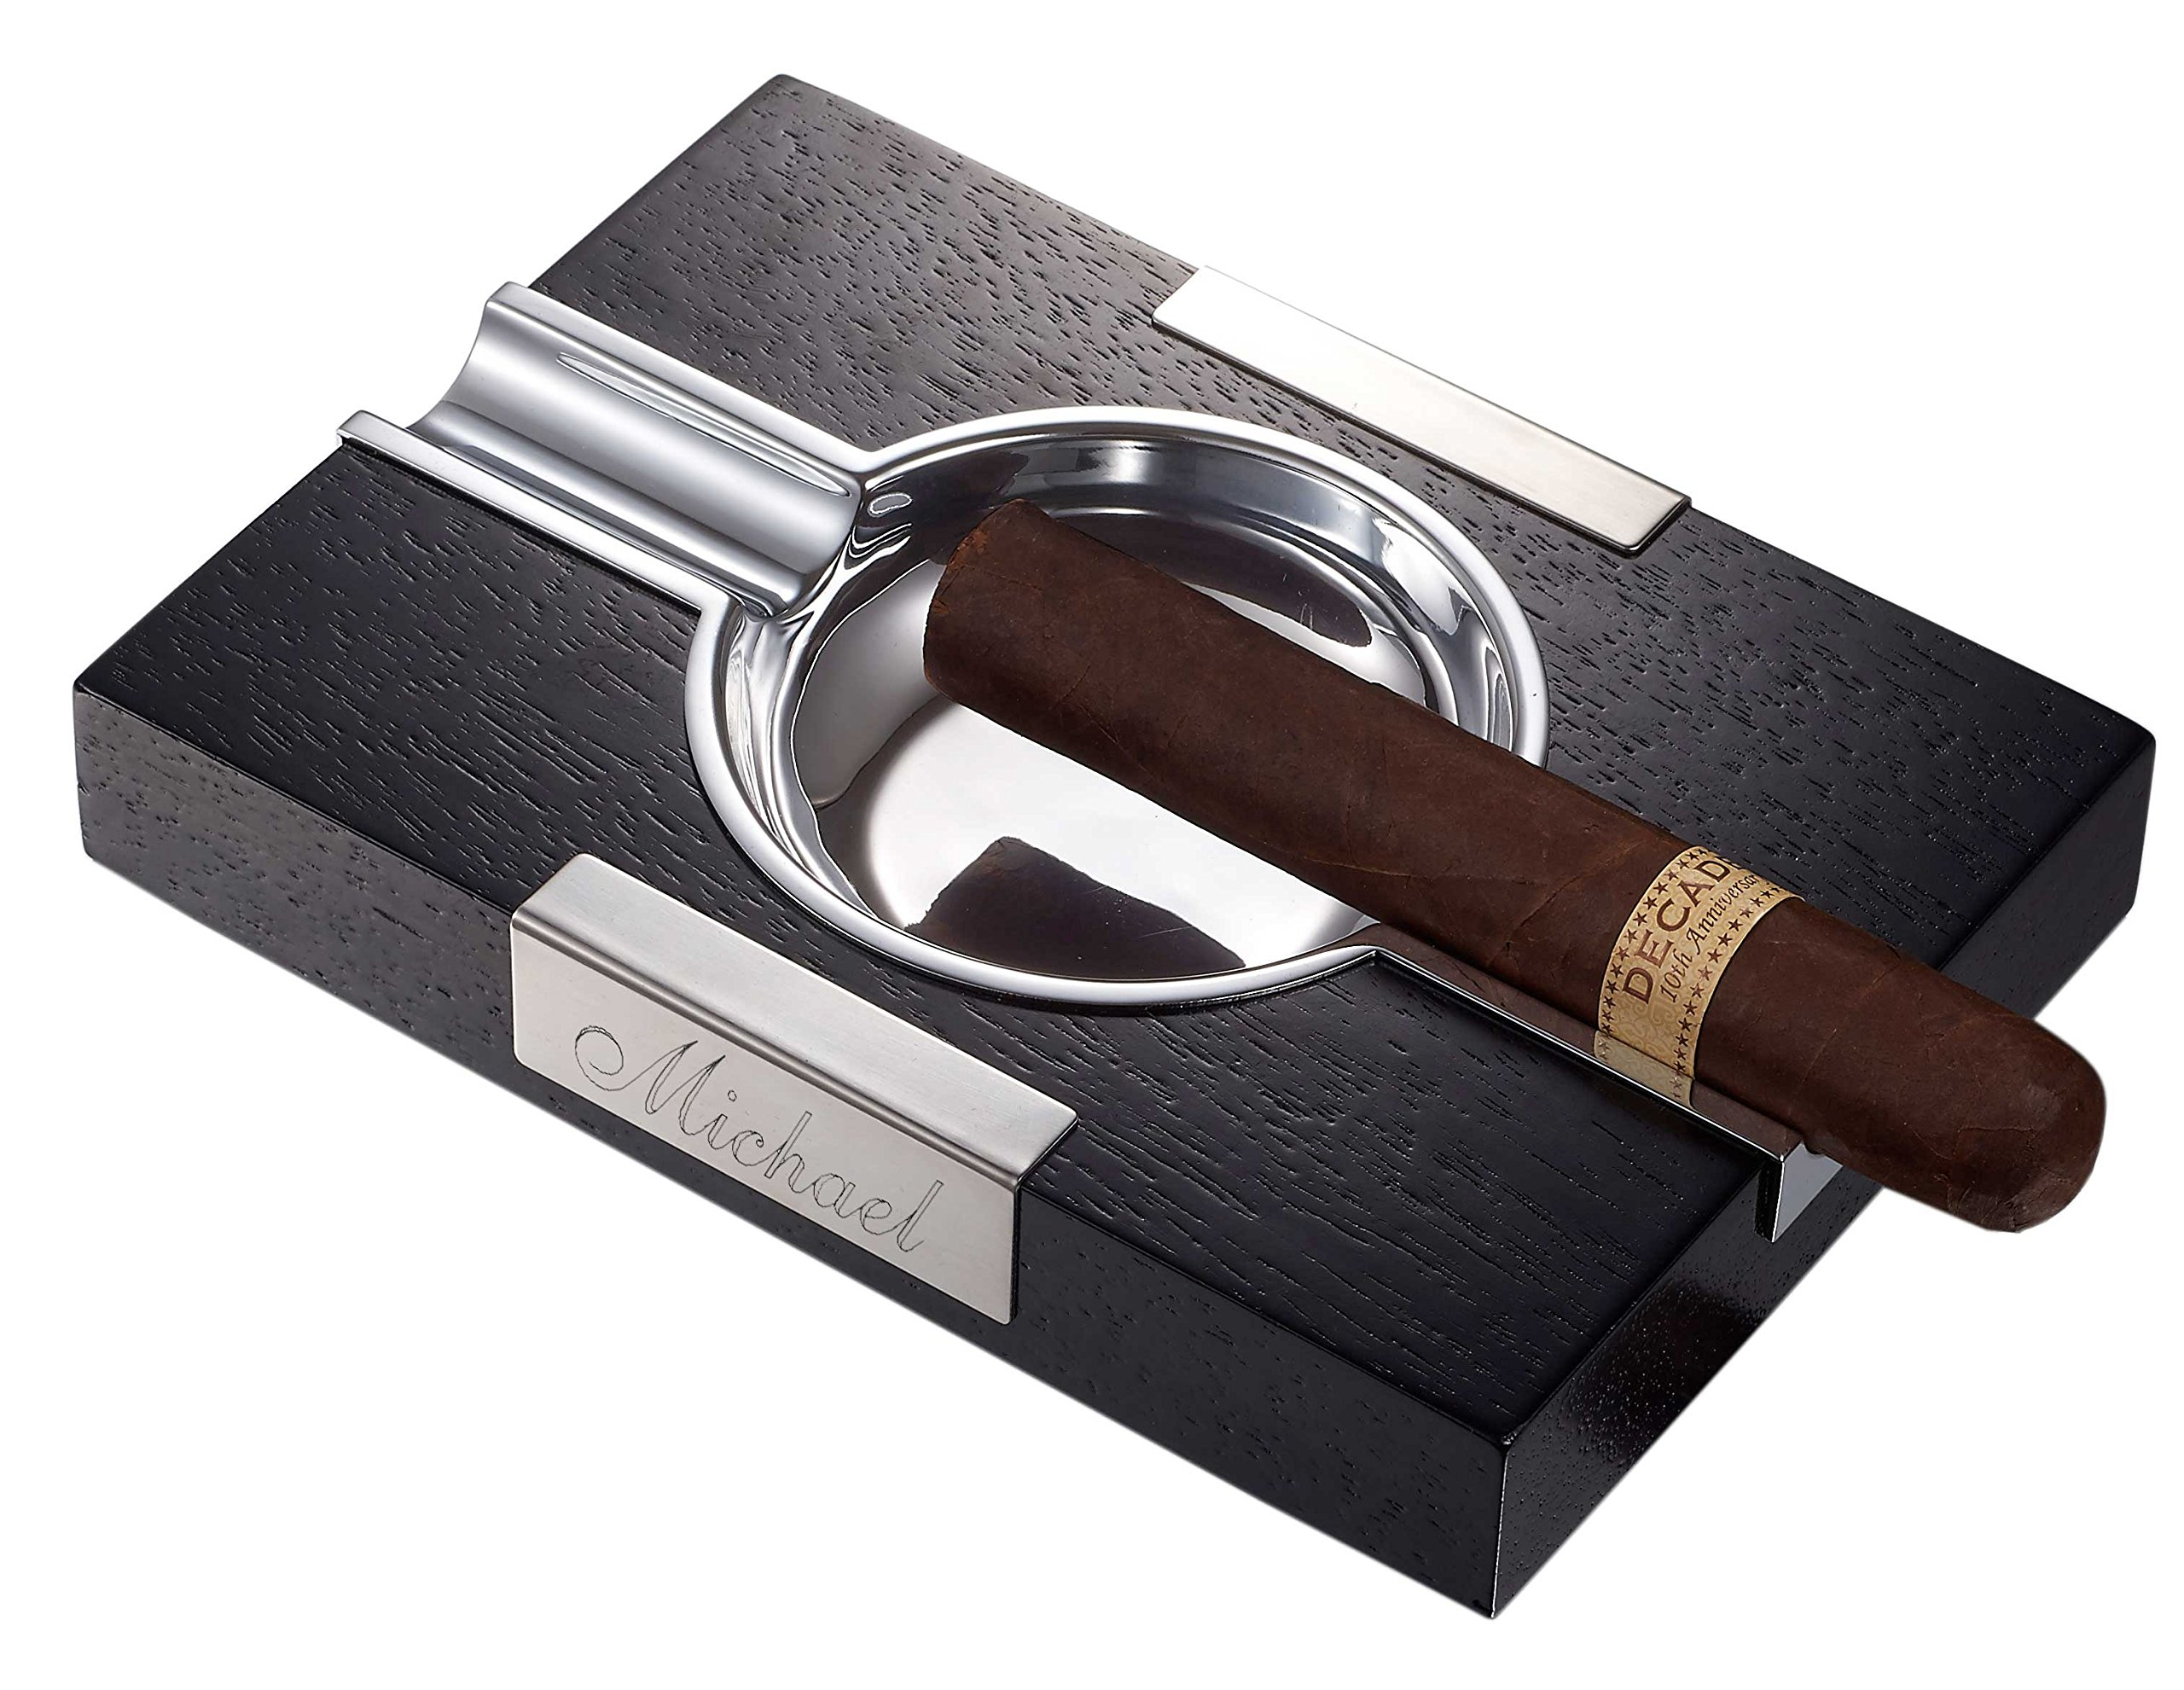 Personalized Wooden Cigar Ashtray with Free Engraving